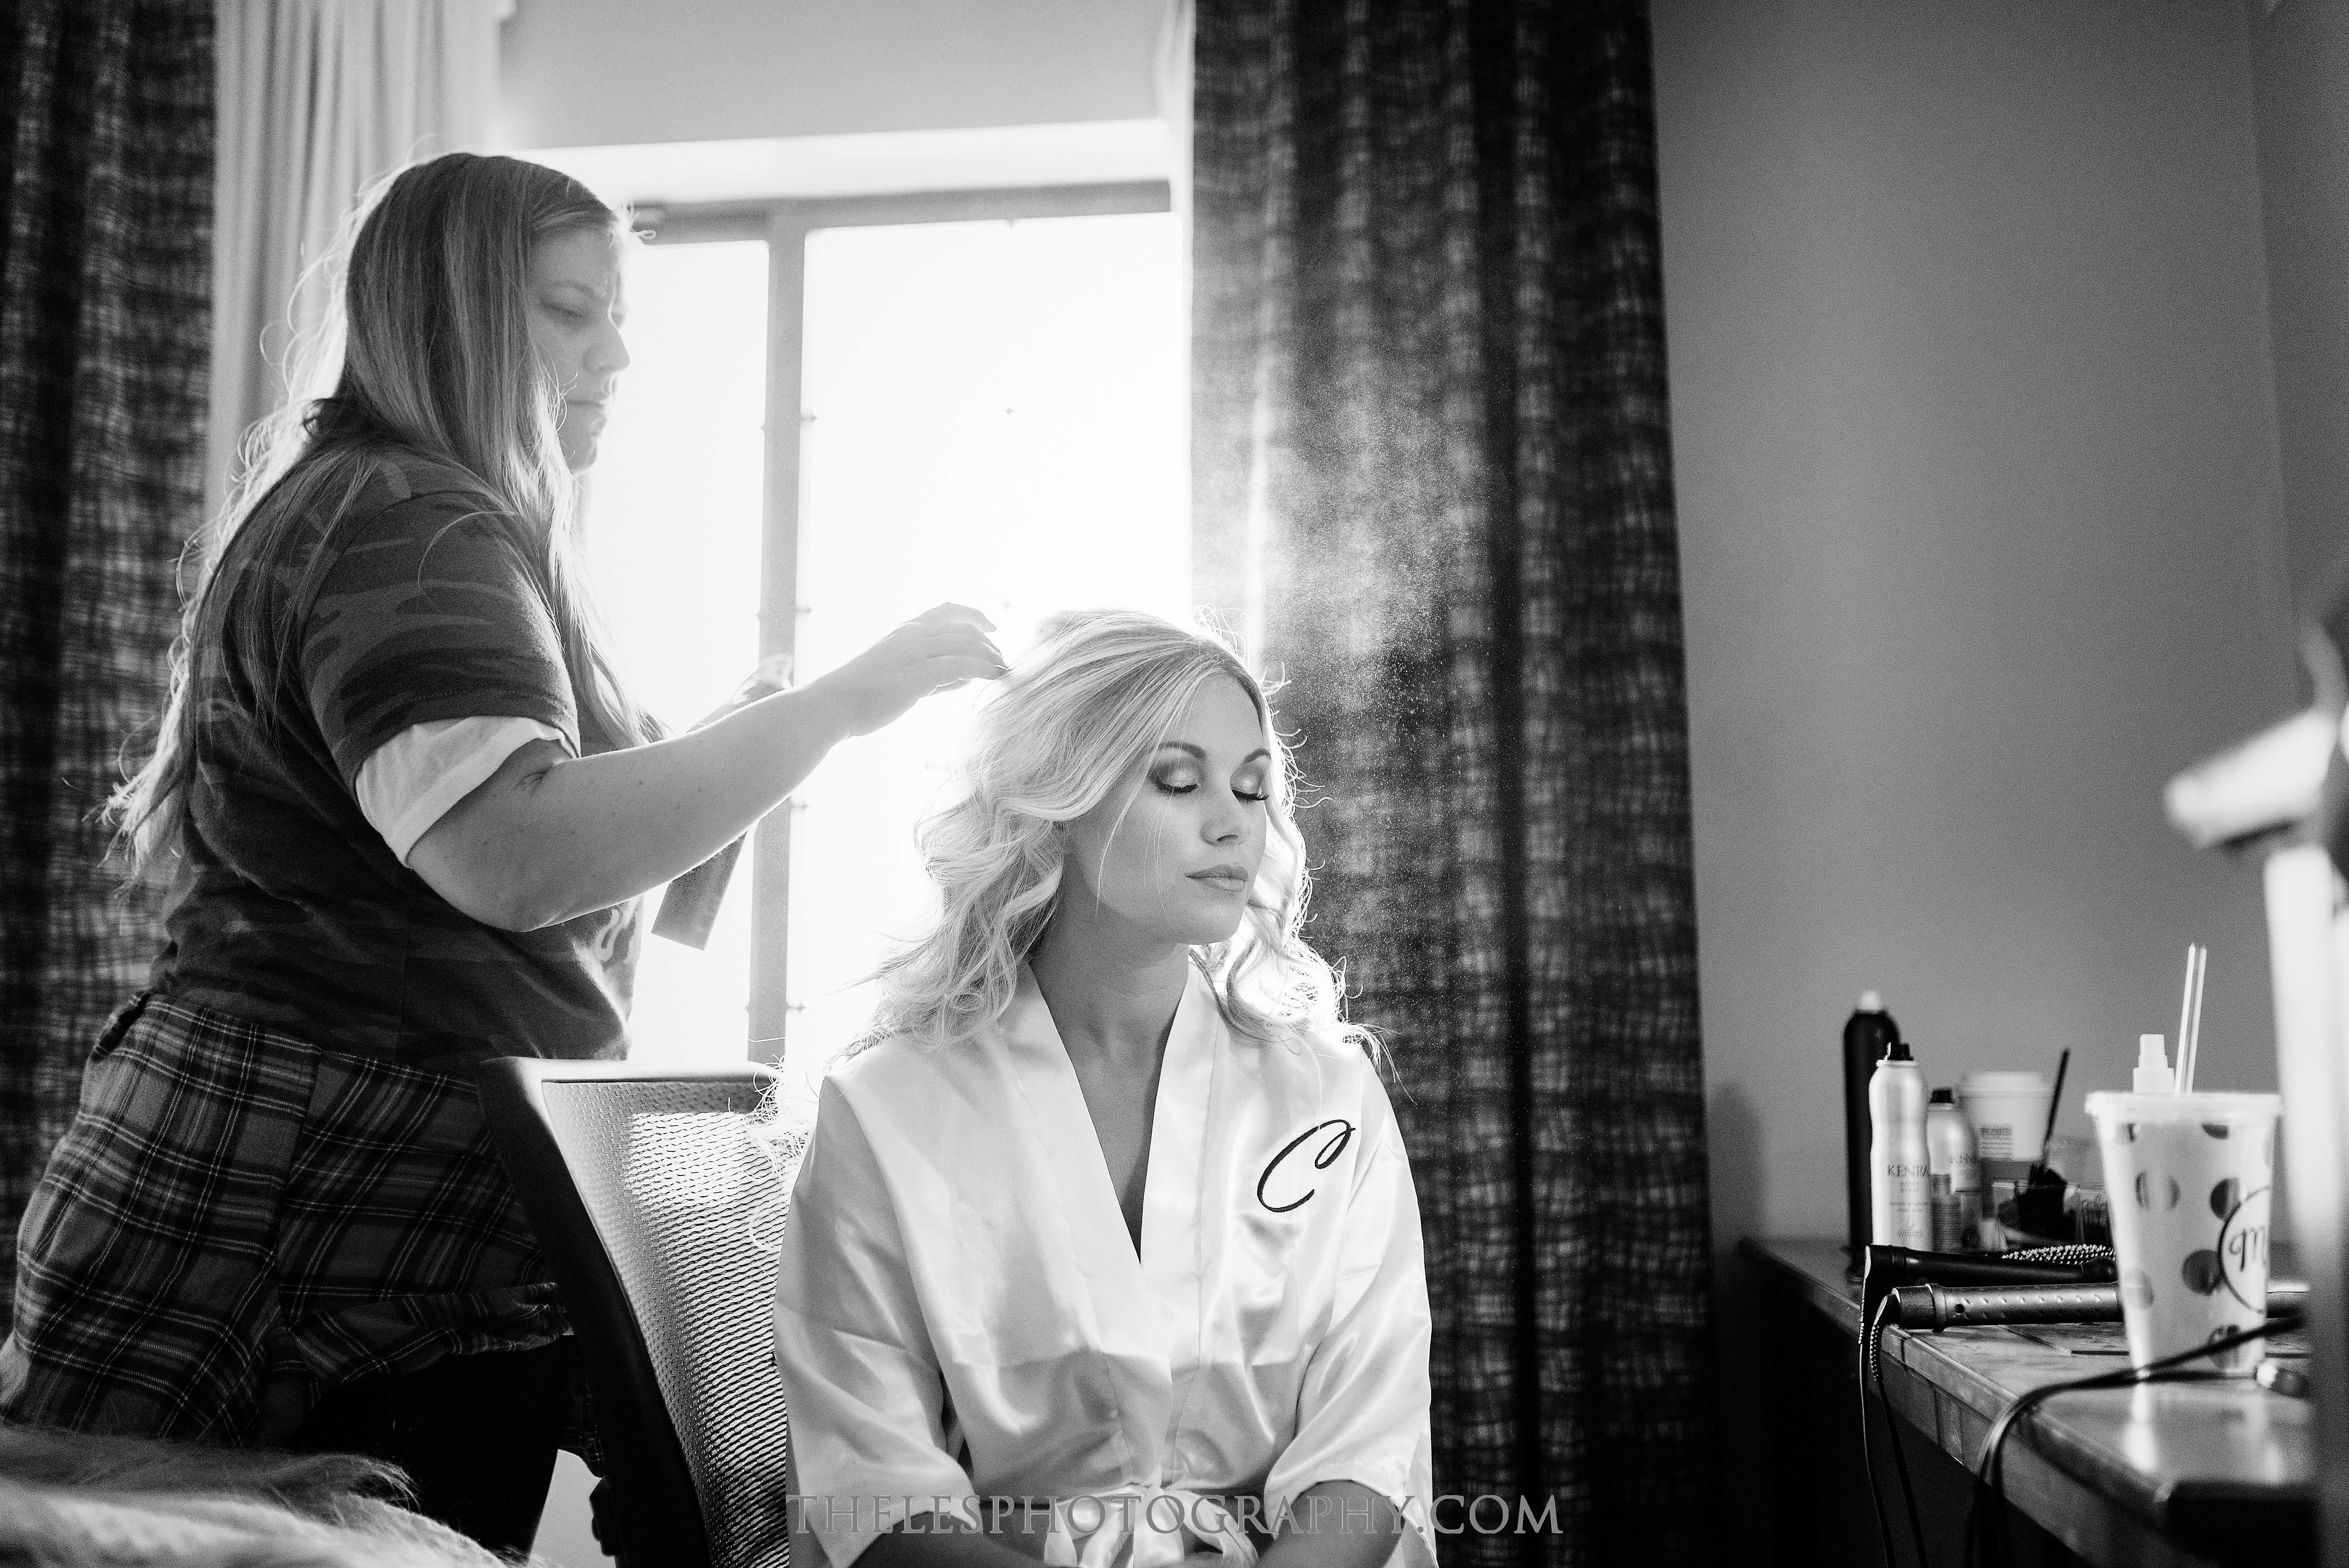 014 Dallas Wedding Photography - Photographer - The Les Photography - Fort Country Memories Wedding